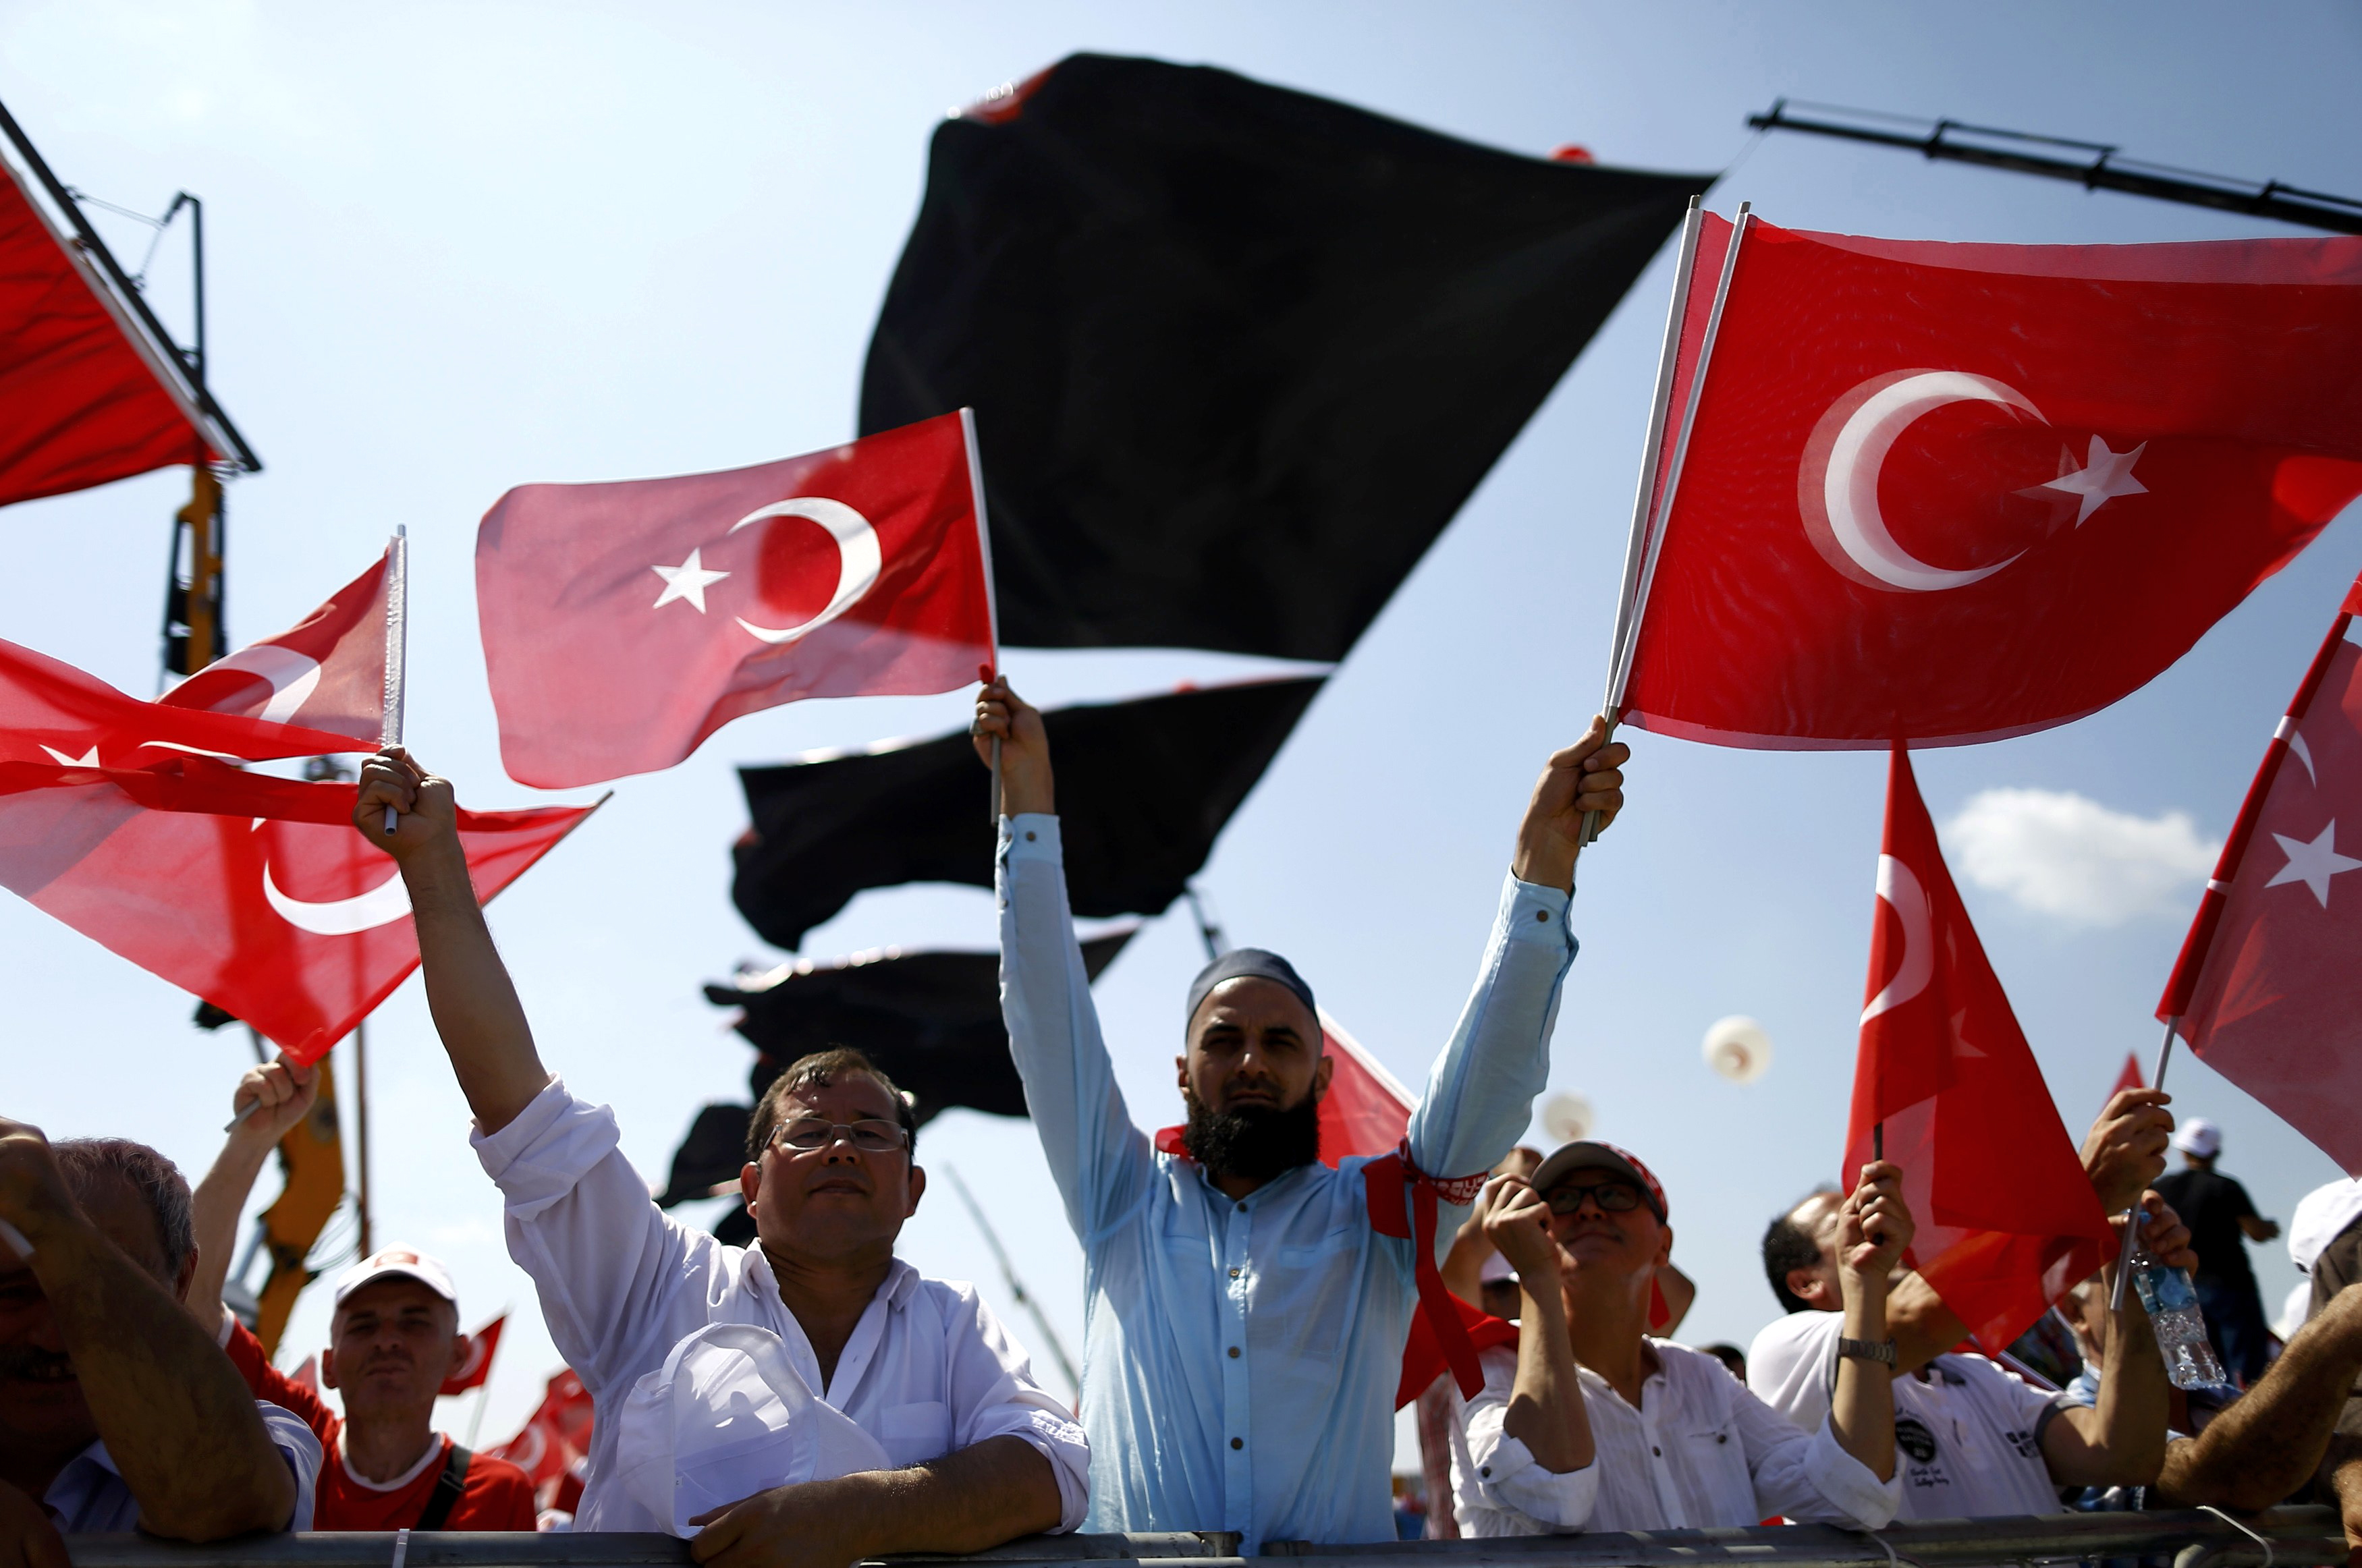 People wave Turkey's national flags ahead of the Democracy and Martyrs Rally, organised by Turkish President Tayyip Erdogan and supported by ruling AK Party (AKP), oppositions Republican People's Party (CHP) and Nationalist Movement Party (MHP), to protest against last month's failed military coup attempt, in Istanbul, Turkey, August 7, 2016. Photo: Reuters